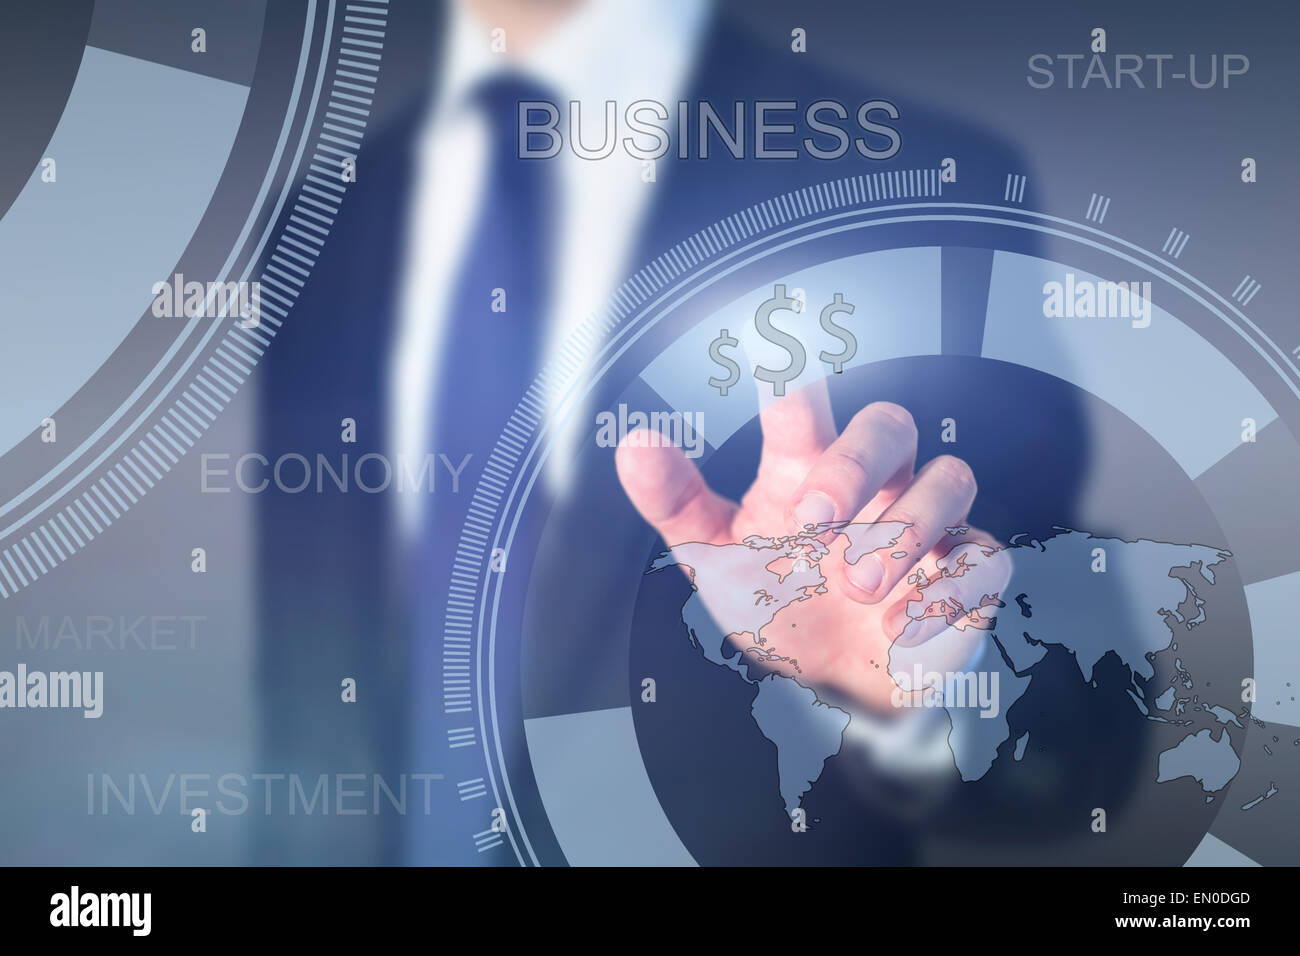 global business concept, start-up - Stock Image